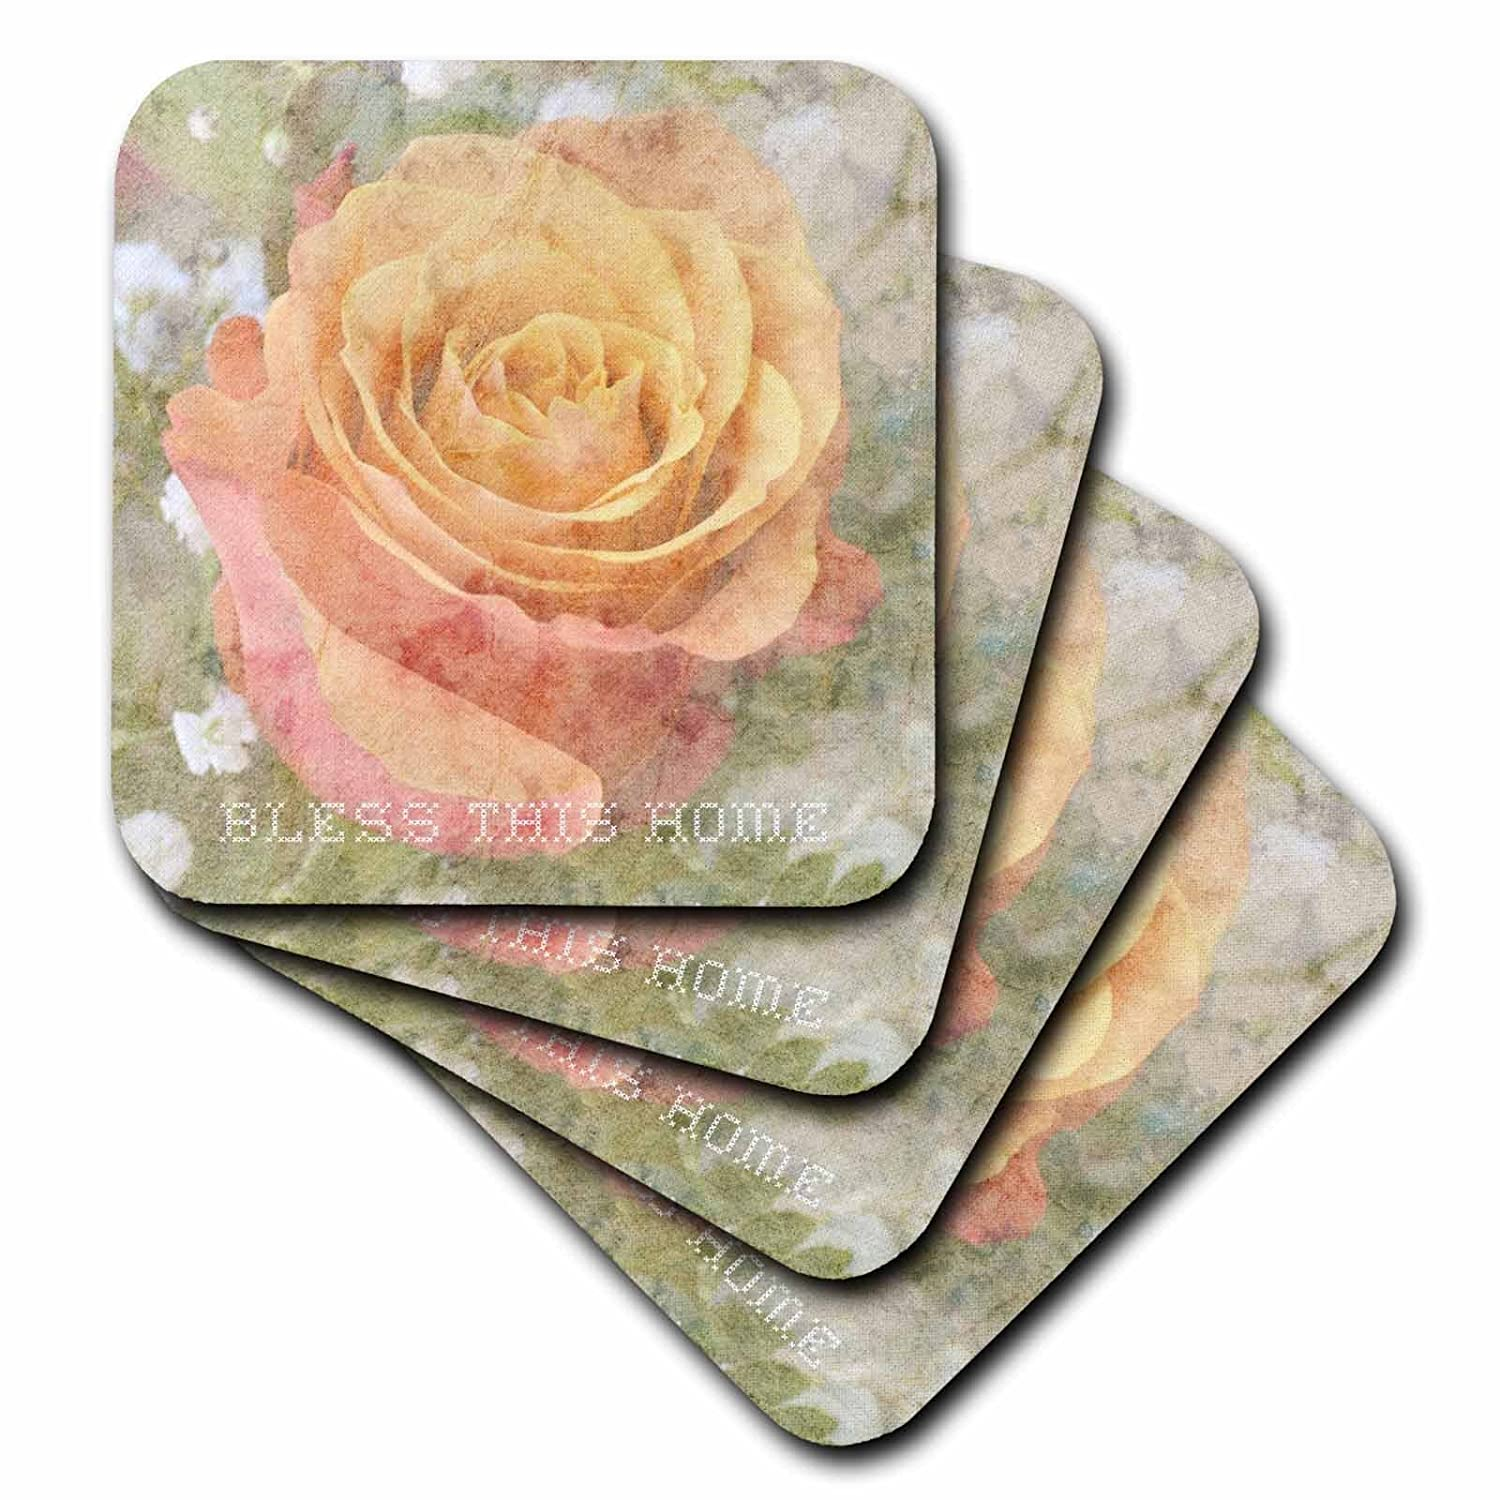 3dRose cst/_29396/_4 Peach Rose Bless This Home Inspirational Quotes Flowers-Ceramic Tile Coasters Set of 8